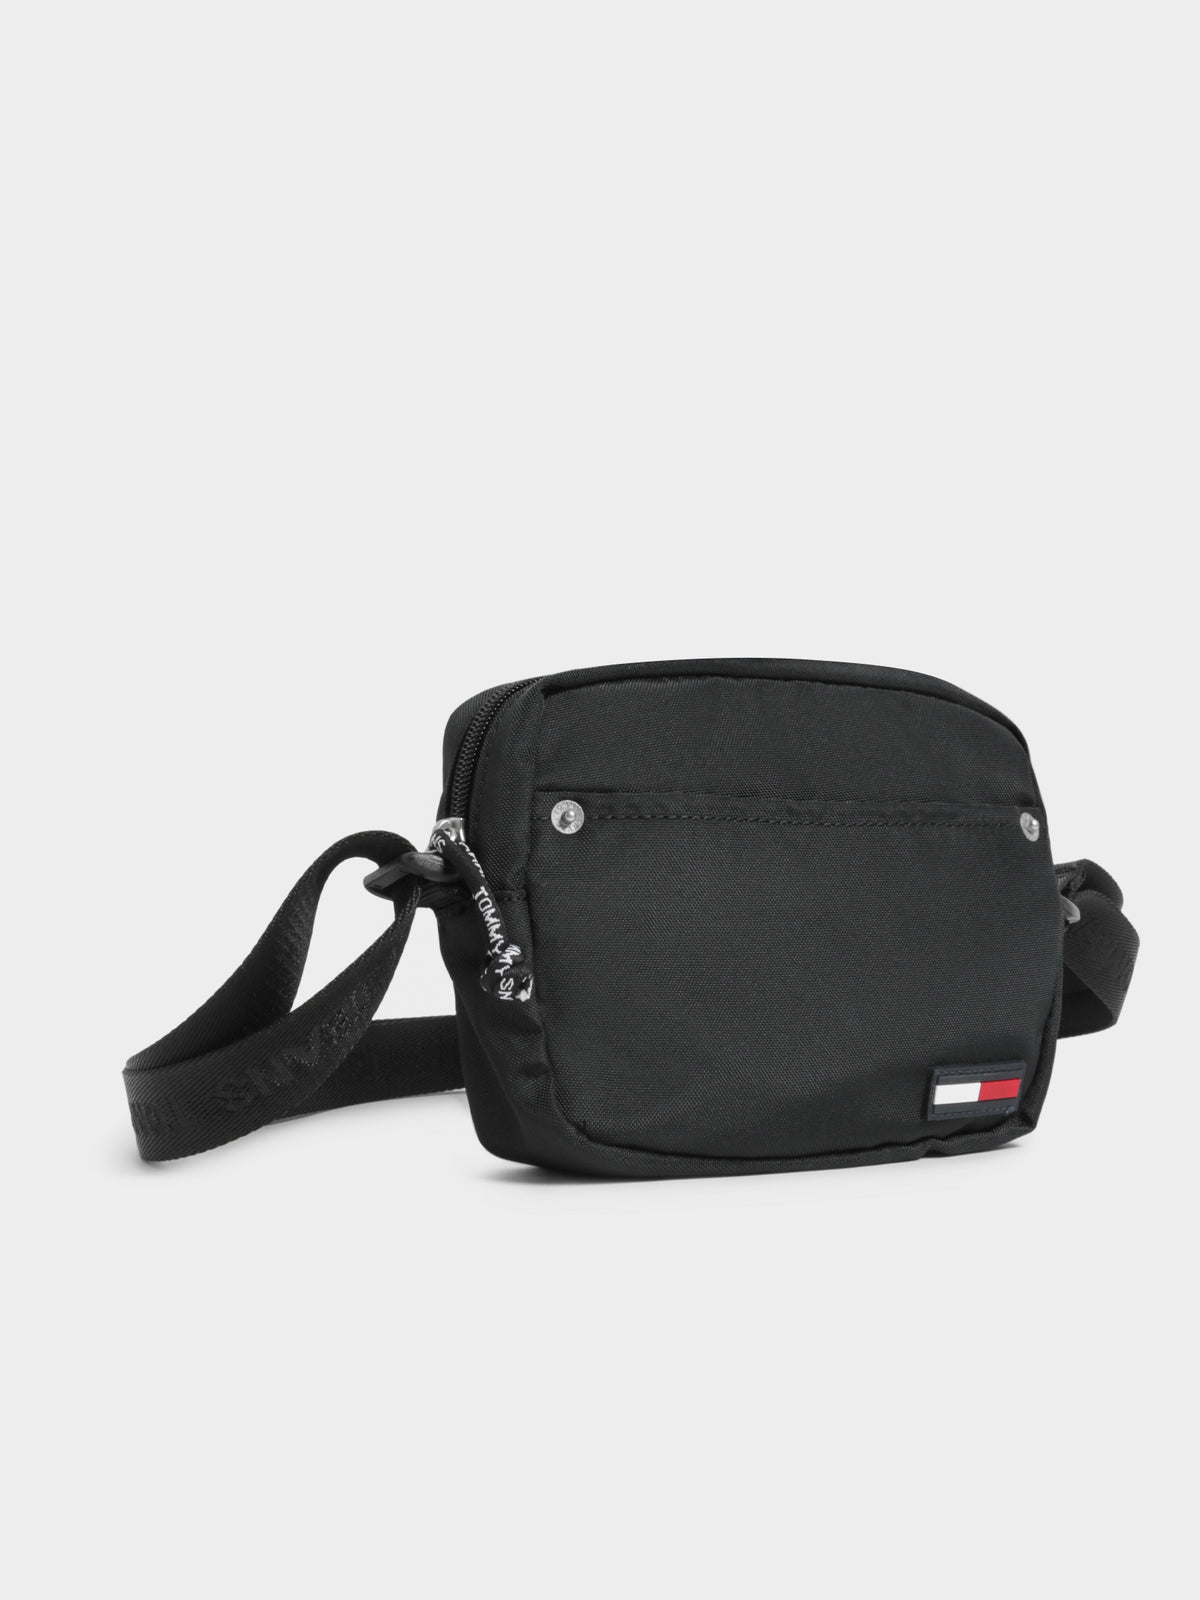 Campus Girl Crossover Bag in Black